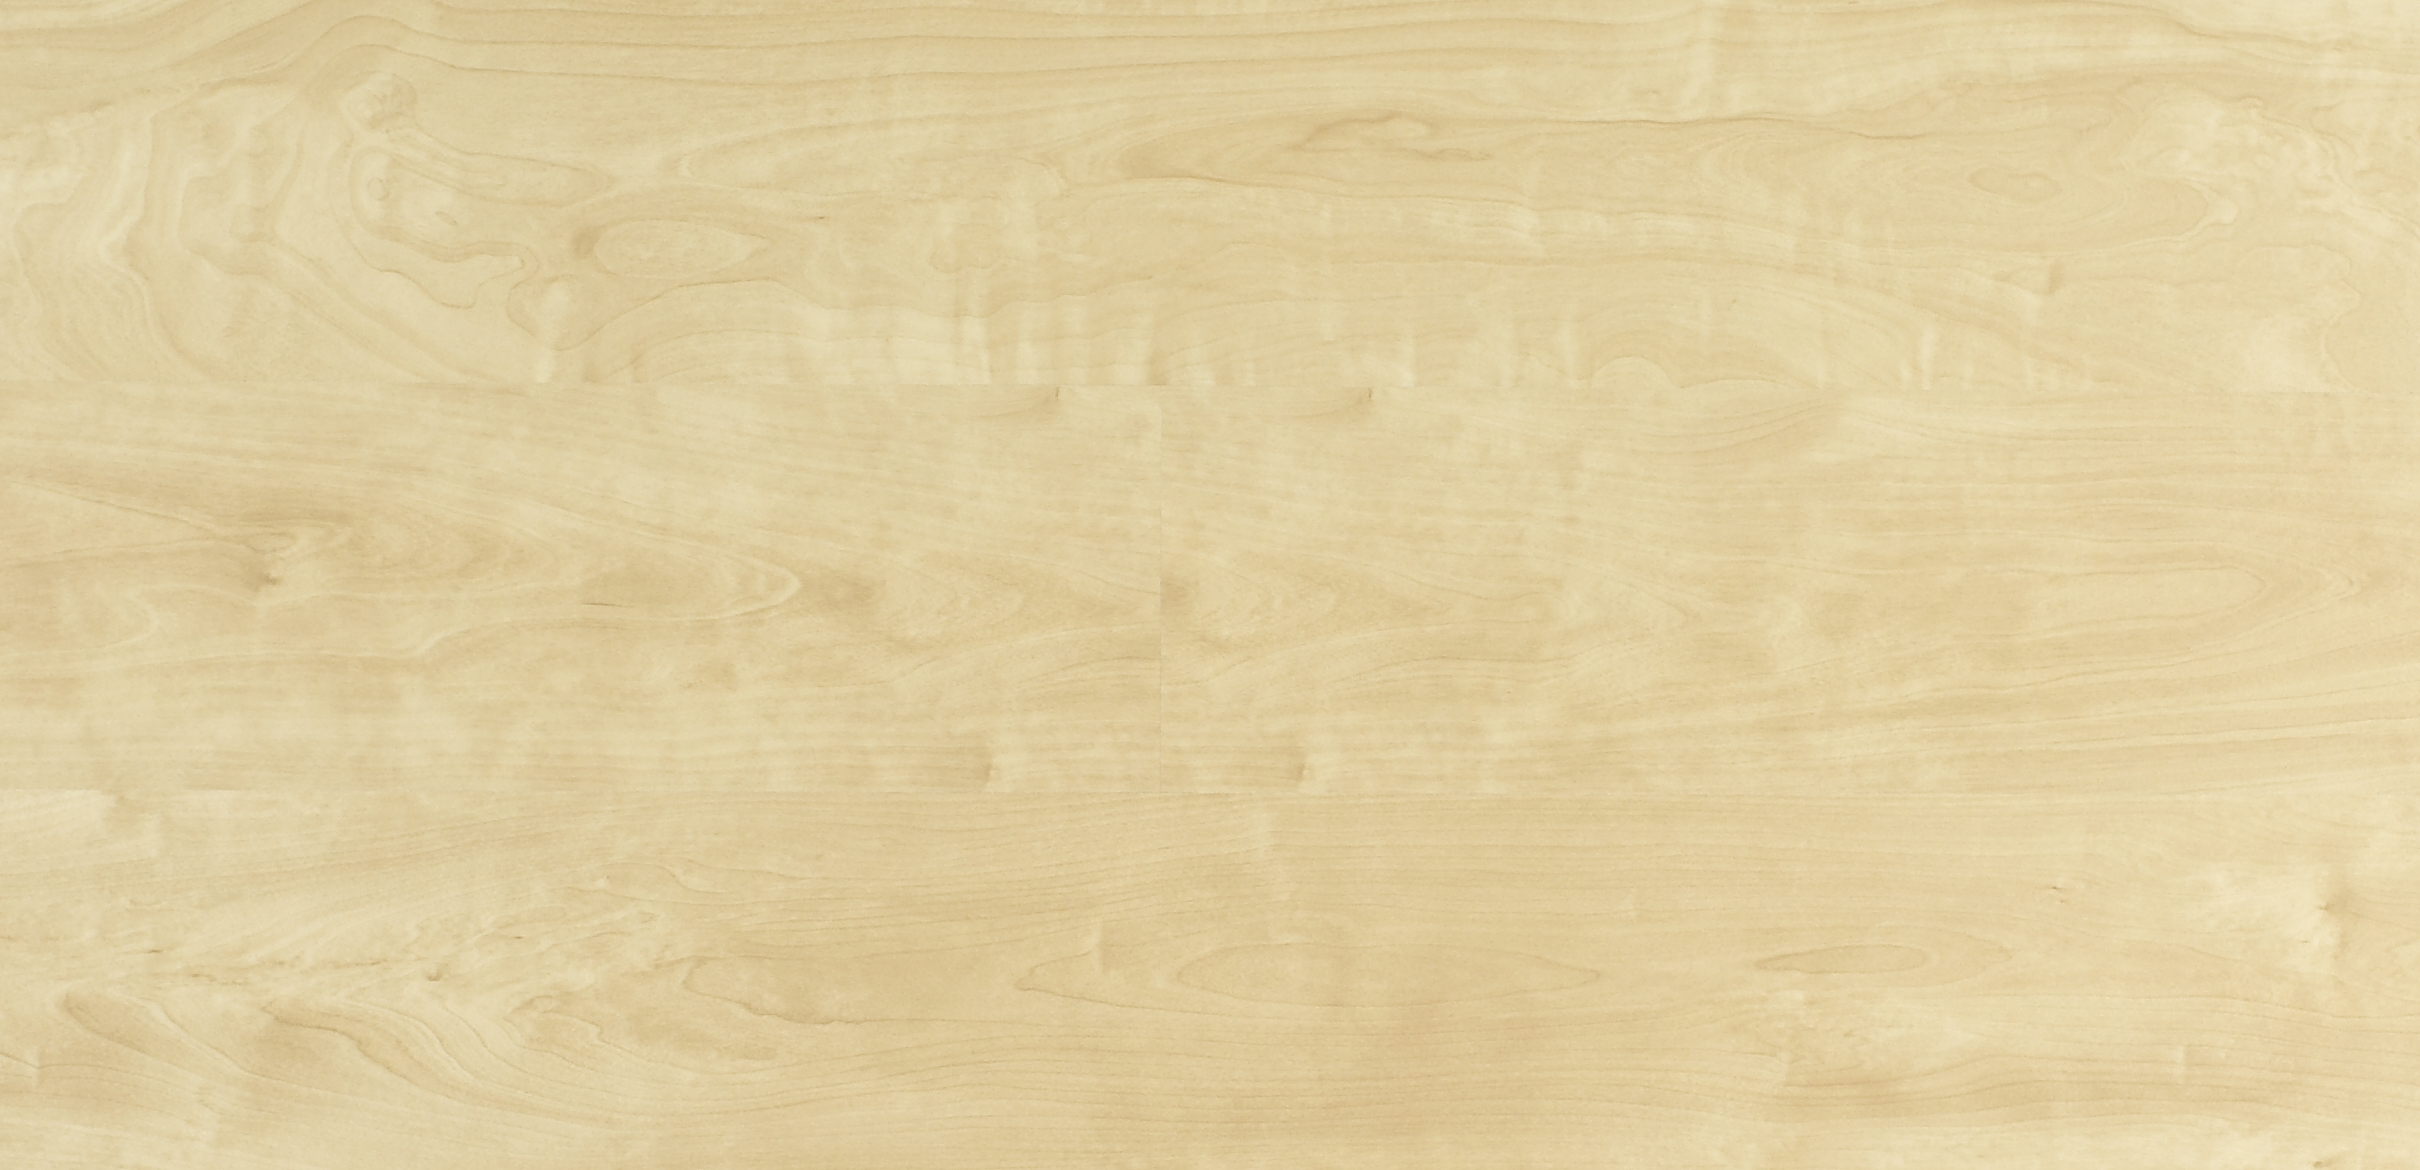 Free texture light wood wood new lugher texture - 34 Home Light Wood Texture Seamless Light Wood Texture Seamless